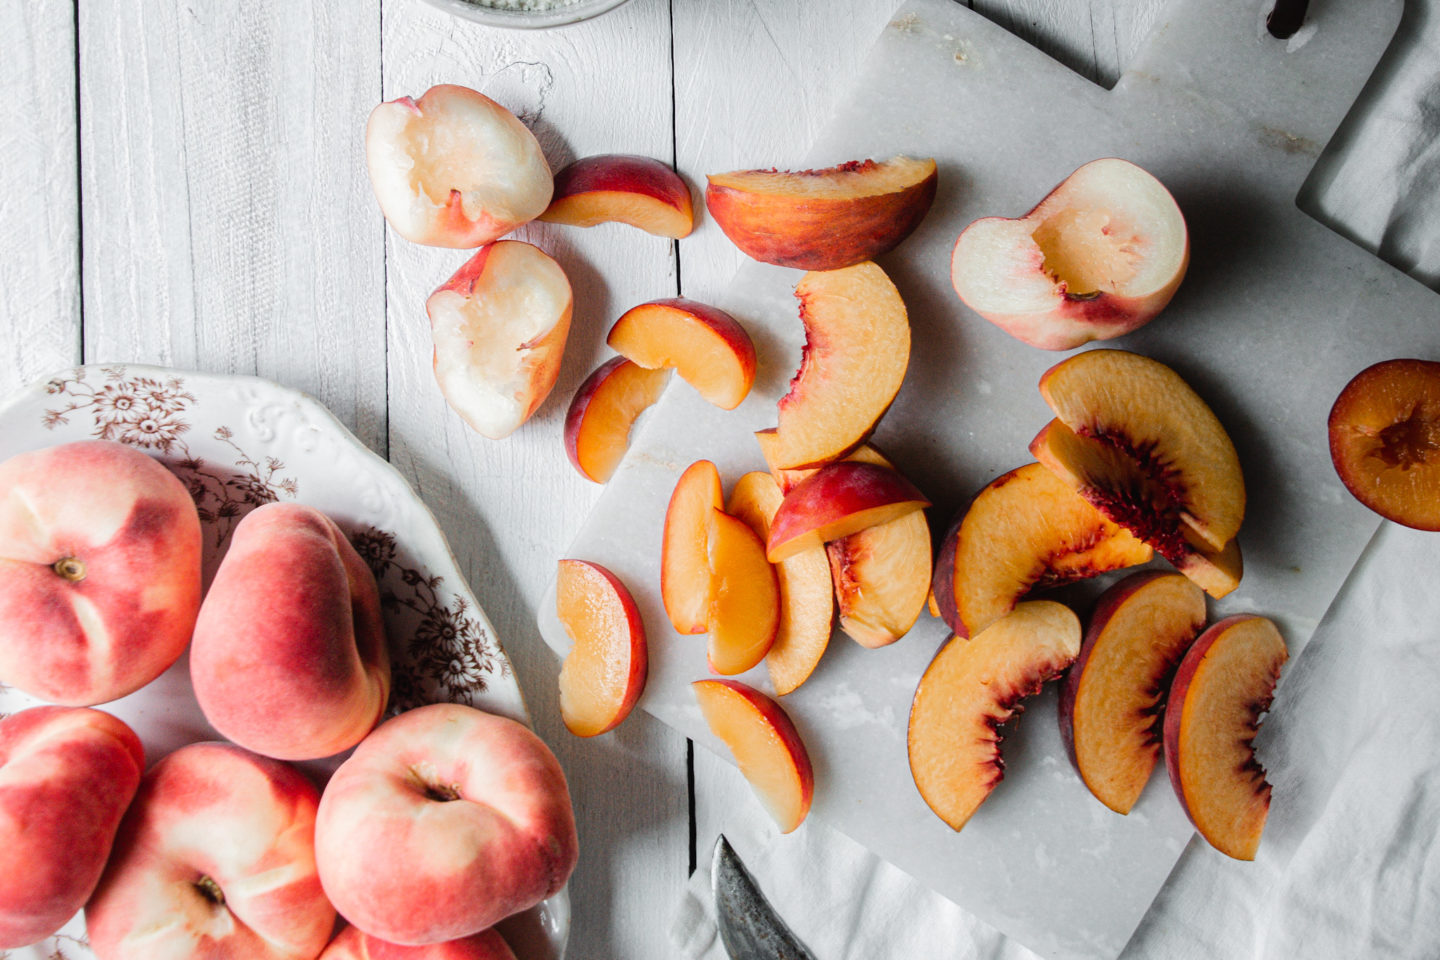 Fresh peach varieties sliced for making peach crisp.